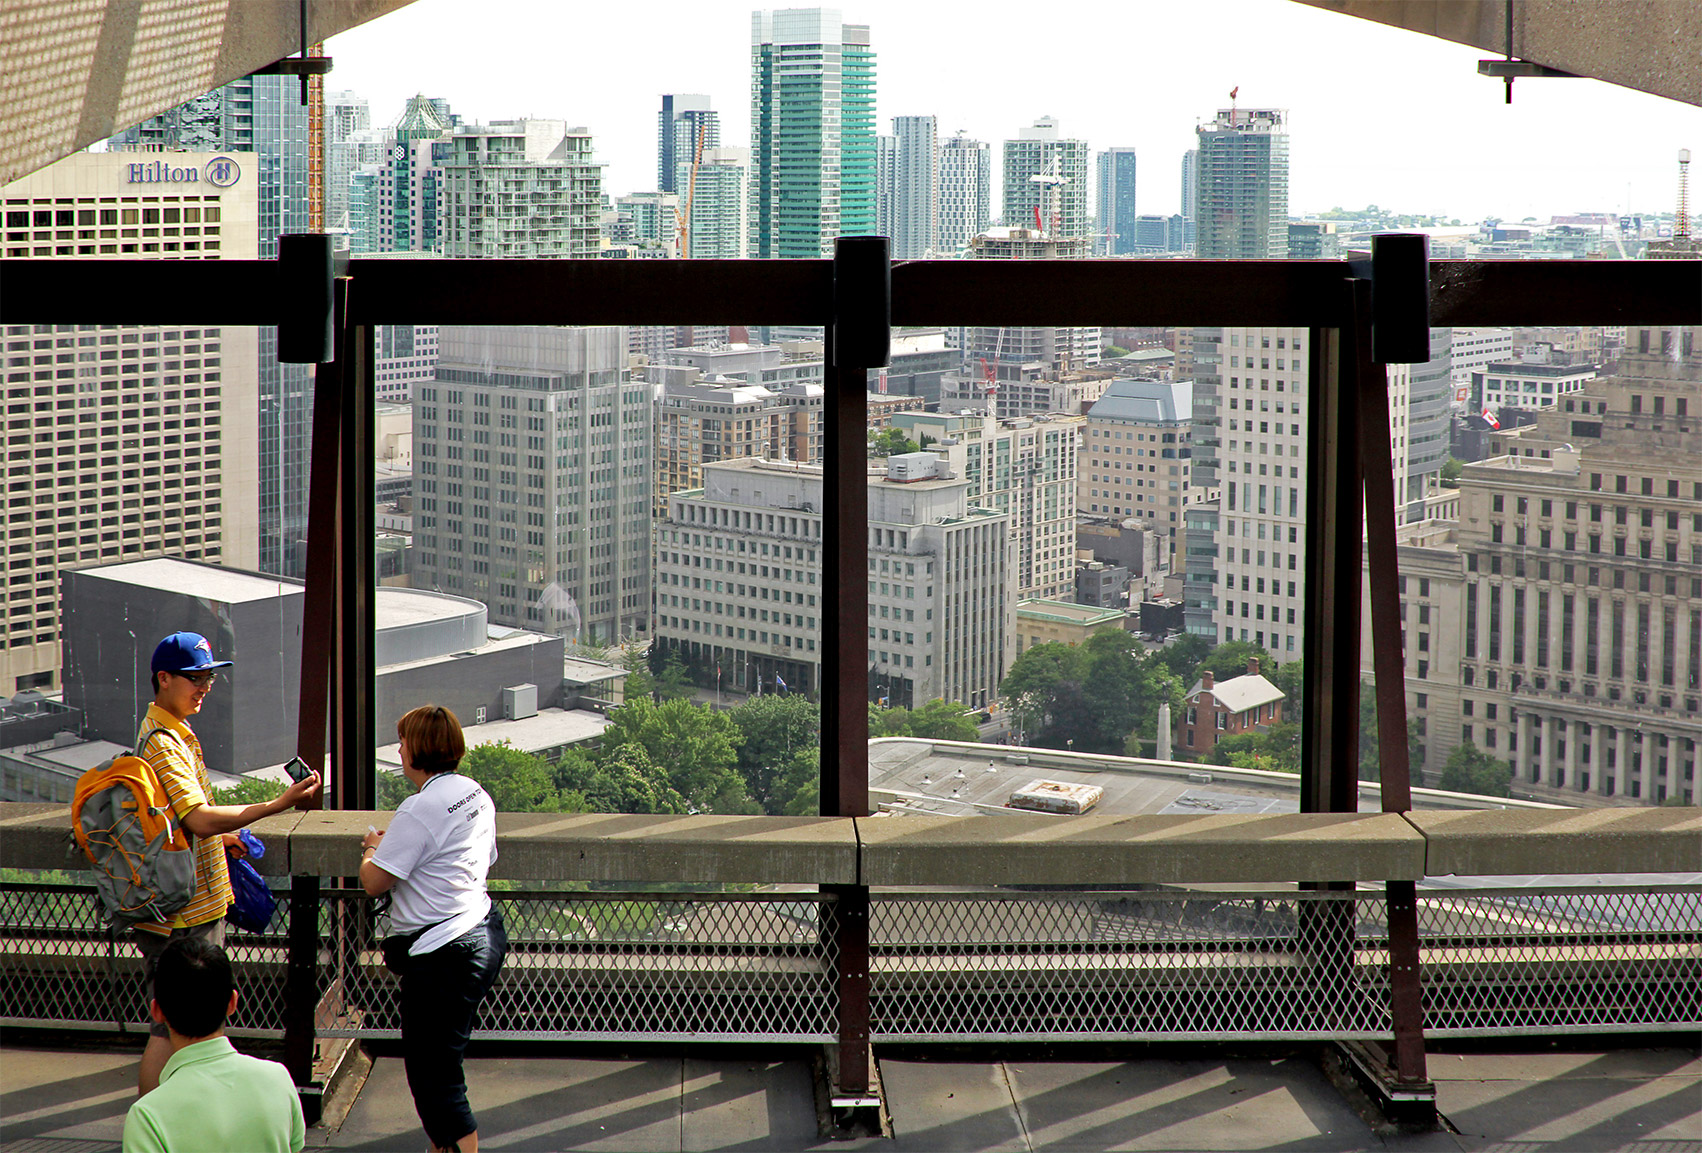 20150509. Enjoy great views from Toronto City Hall's observation